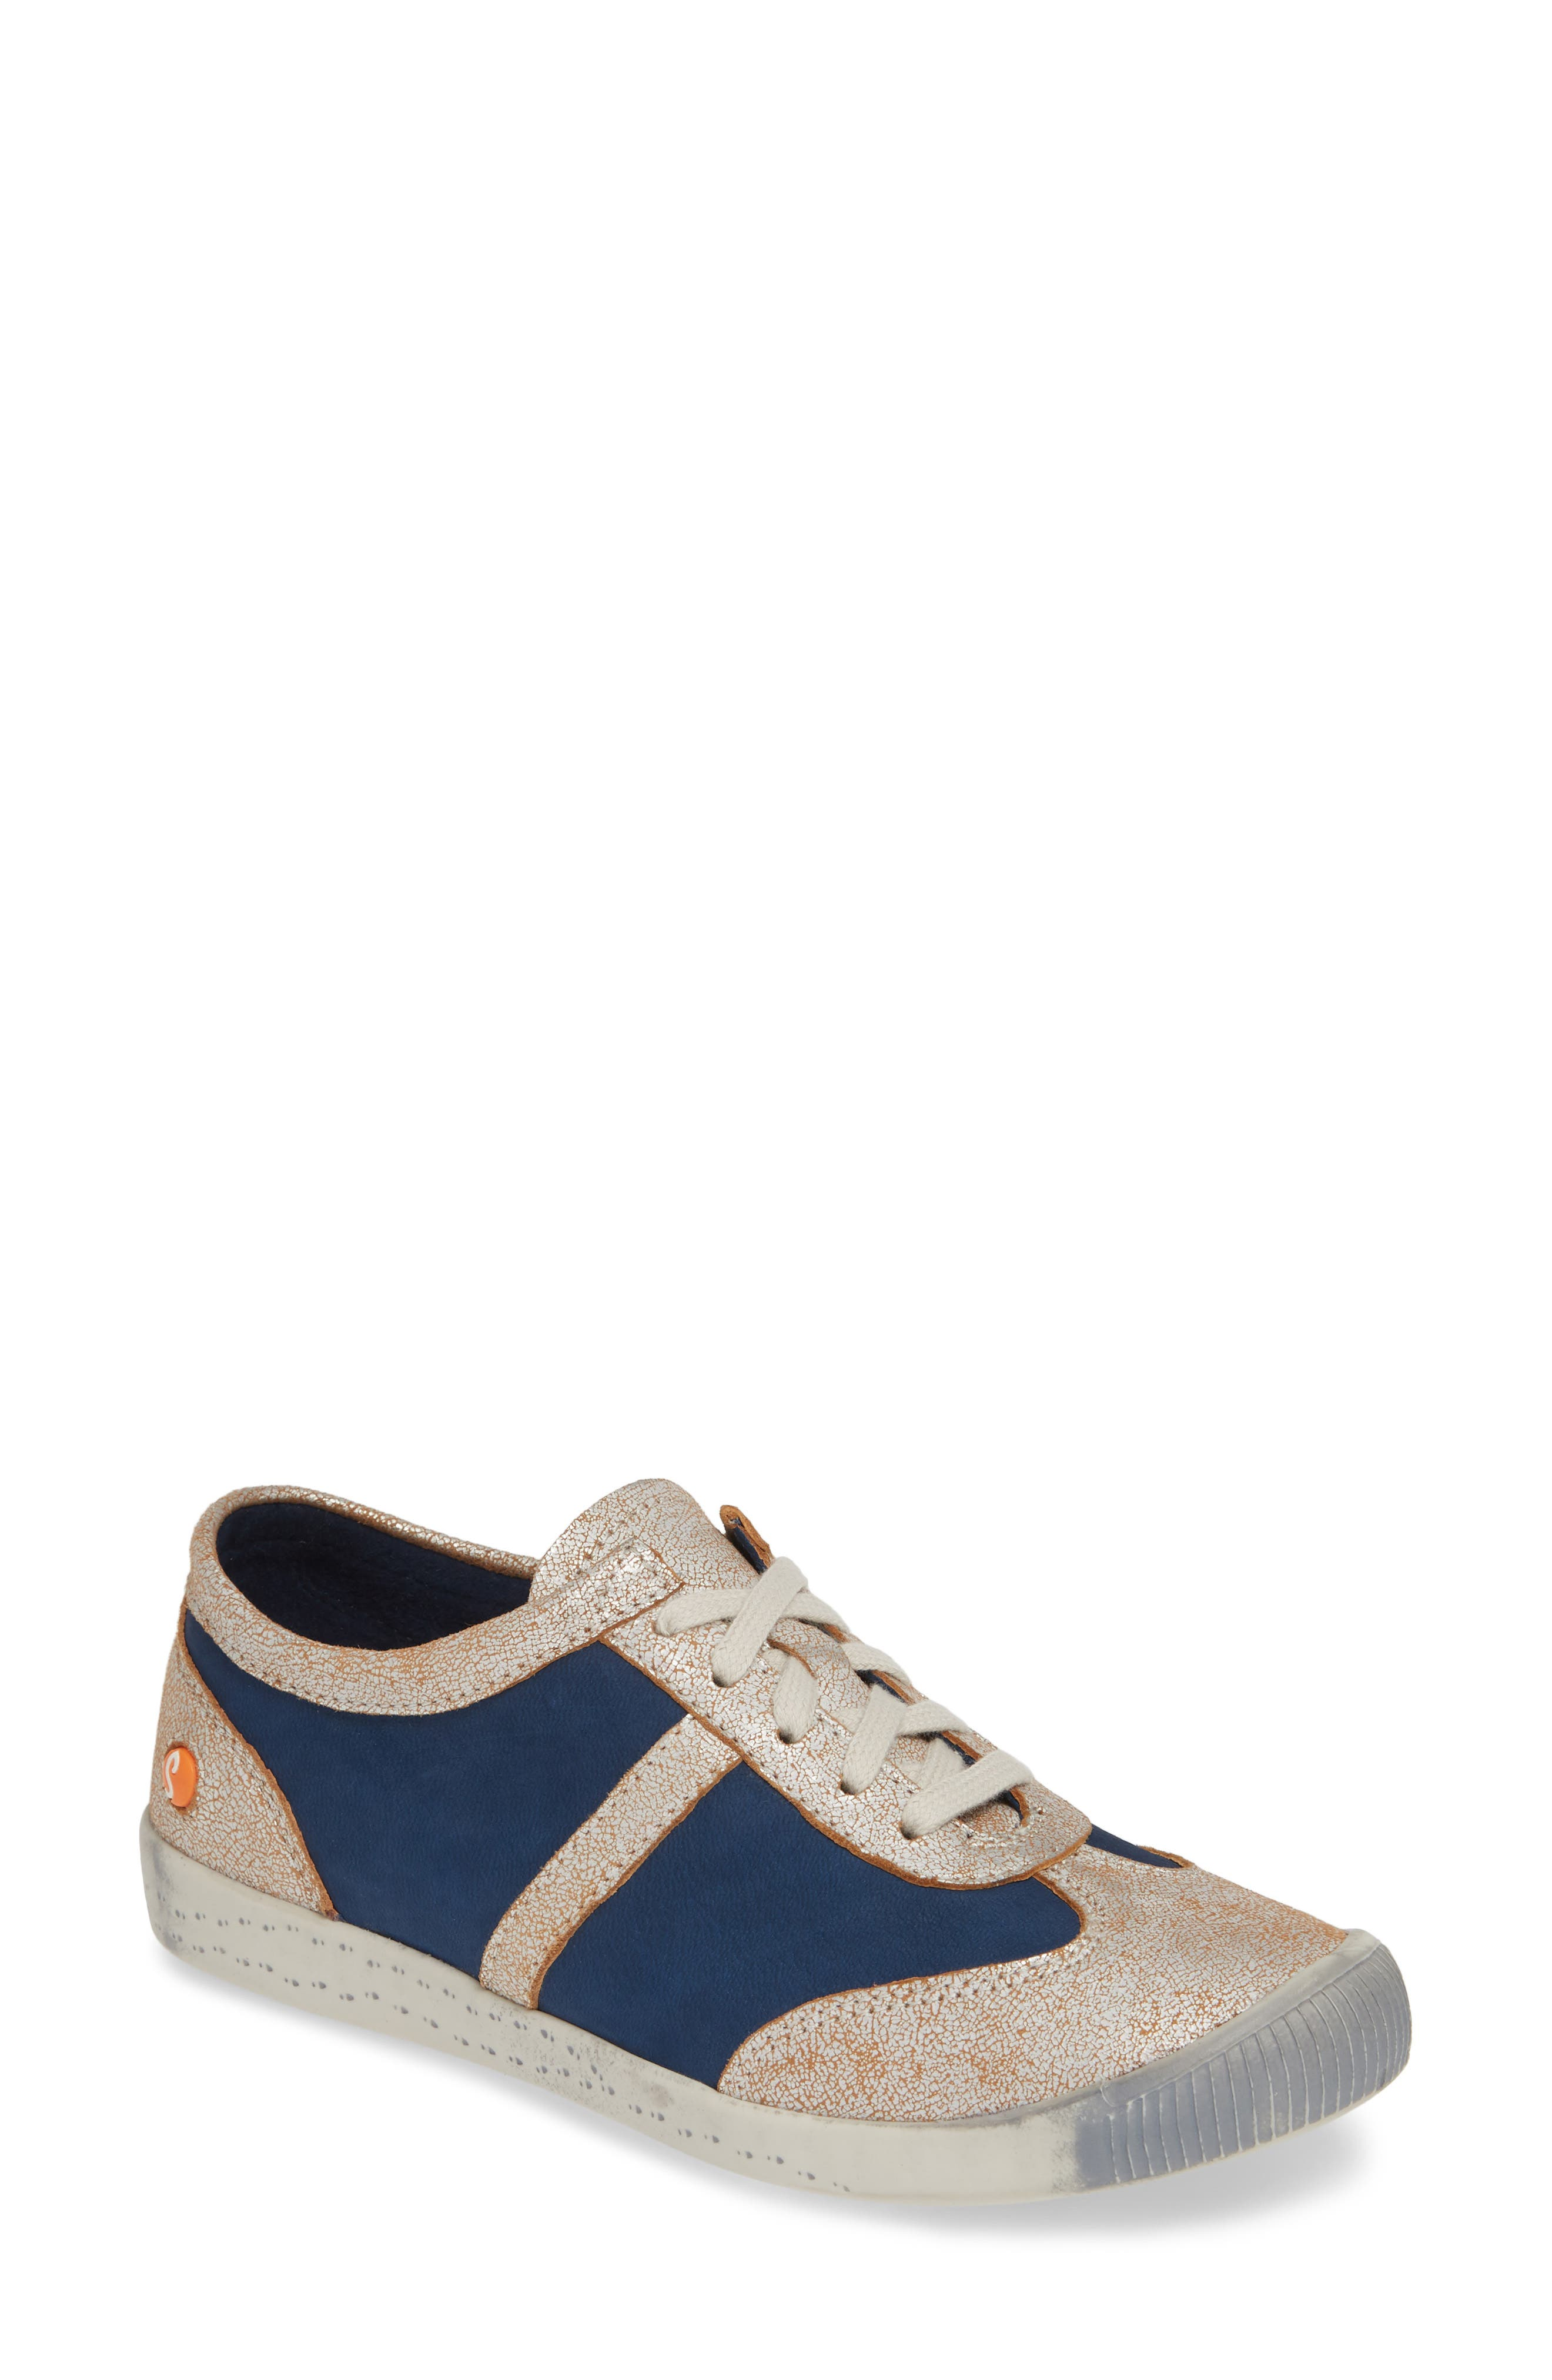 Softinos By Fly London Ifi Sneaker, White